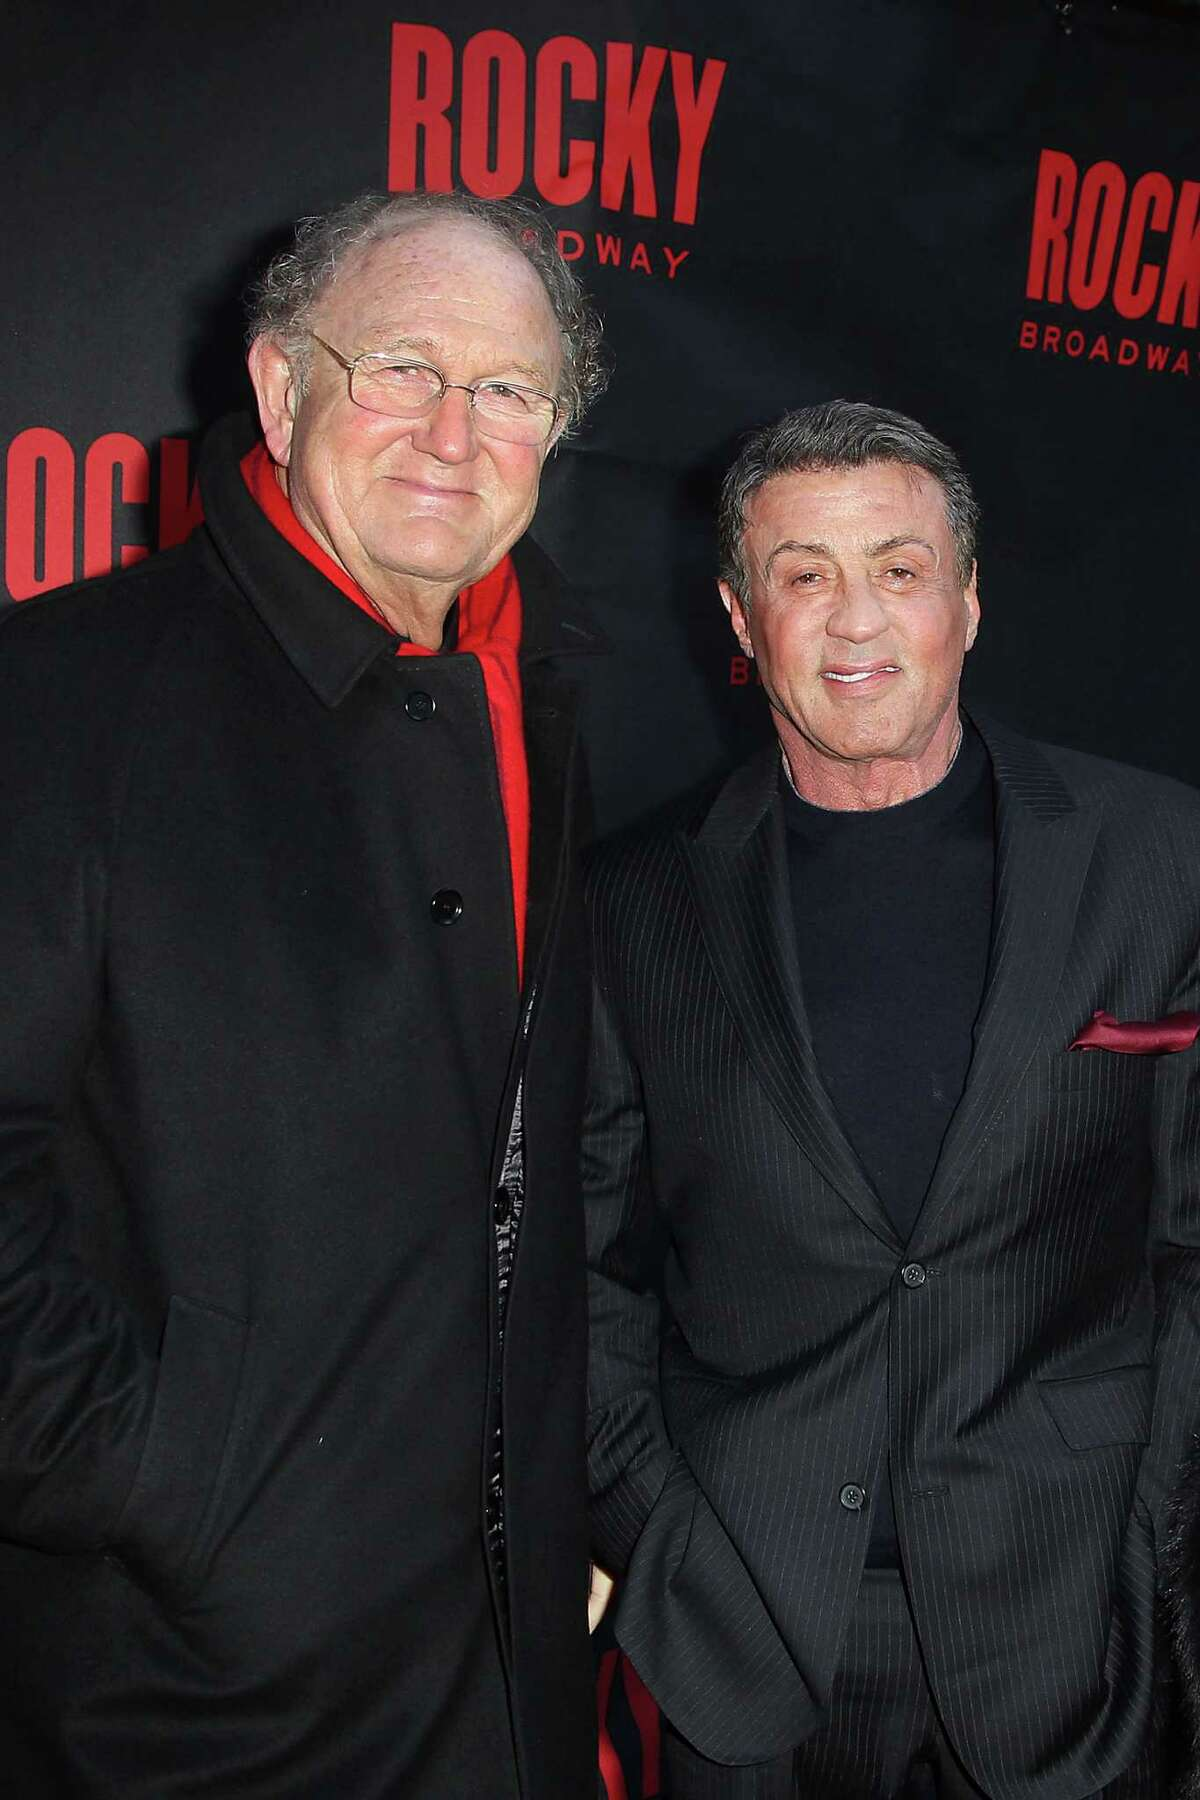 This image released by Starpix shows producer Joop Van Den Ende, left, with actor Sylvester Stallone at opening night of the Broadway musical